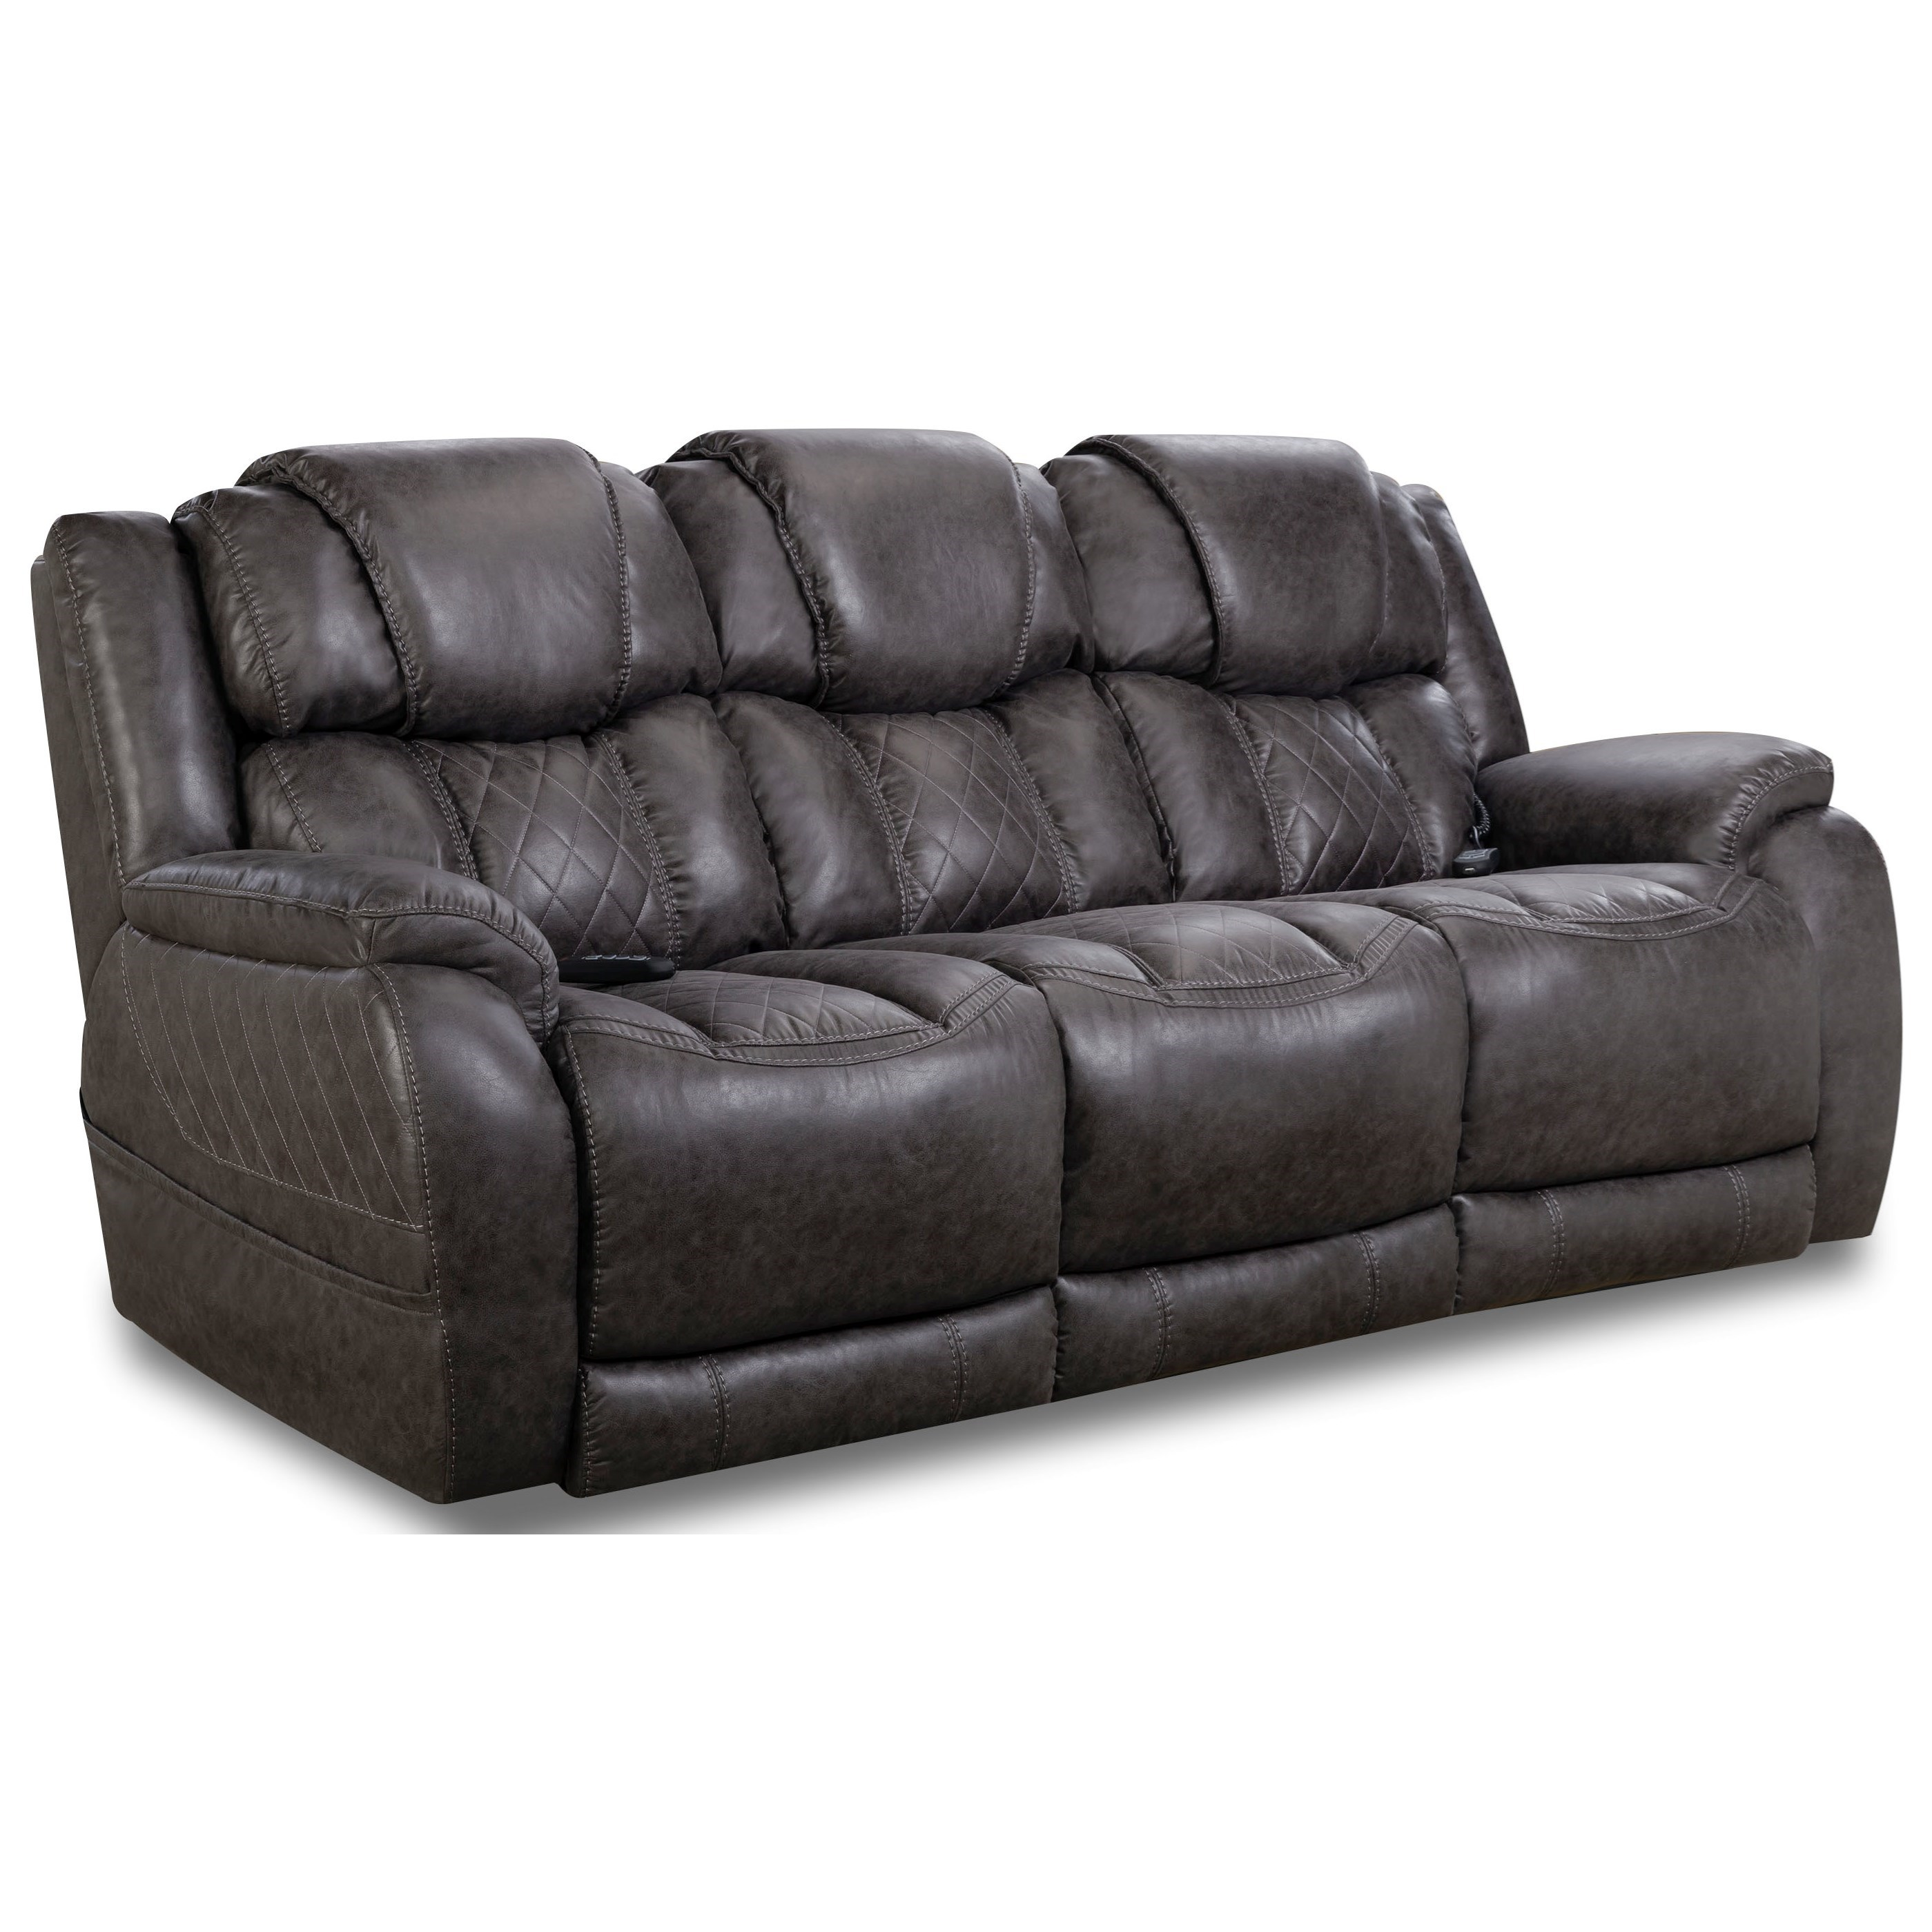 174 Double Reclining Power Sofa by HomeStretch at Westrich Furniture & Appliances